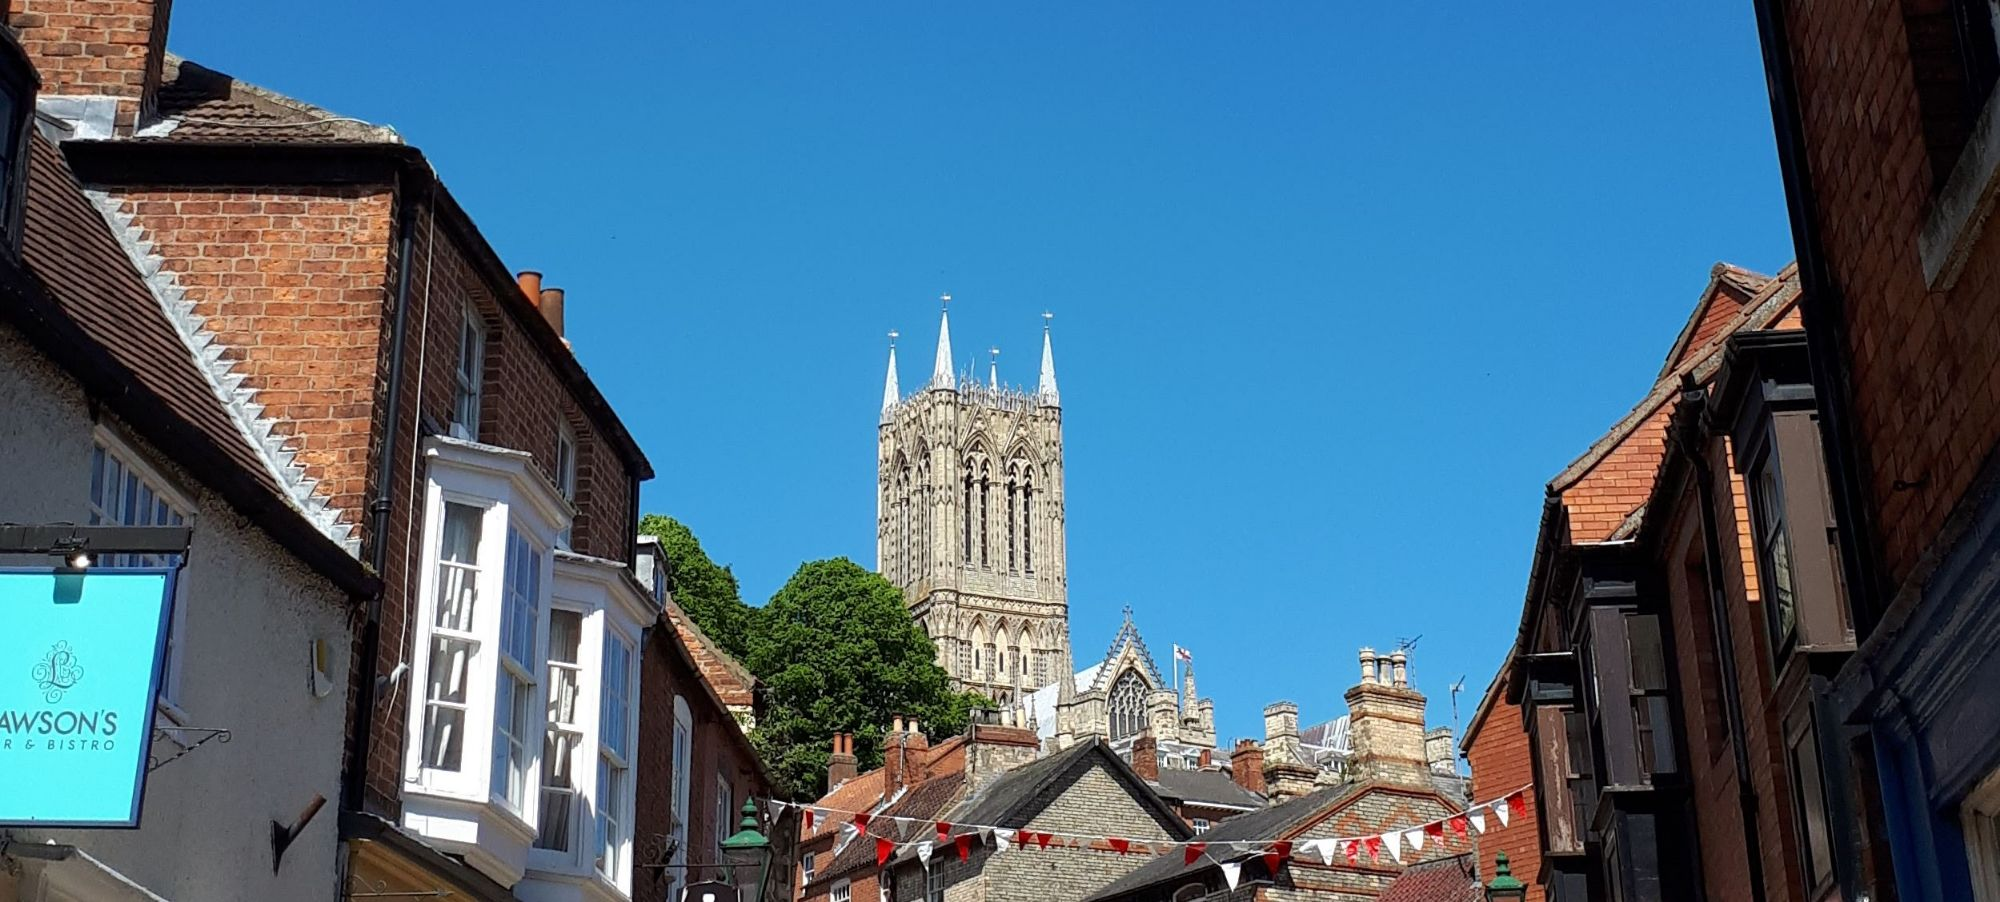 Planning Consultancy Based near the beautiful City of Lincoln